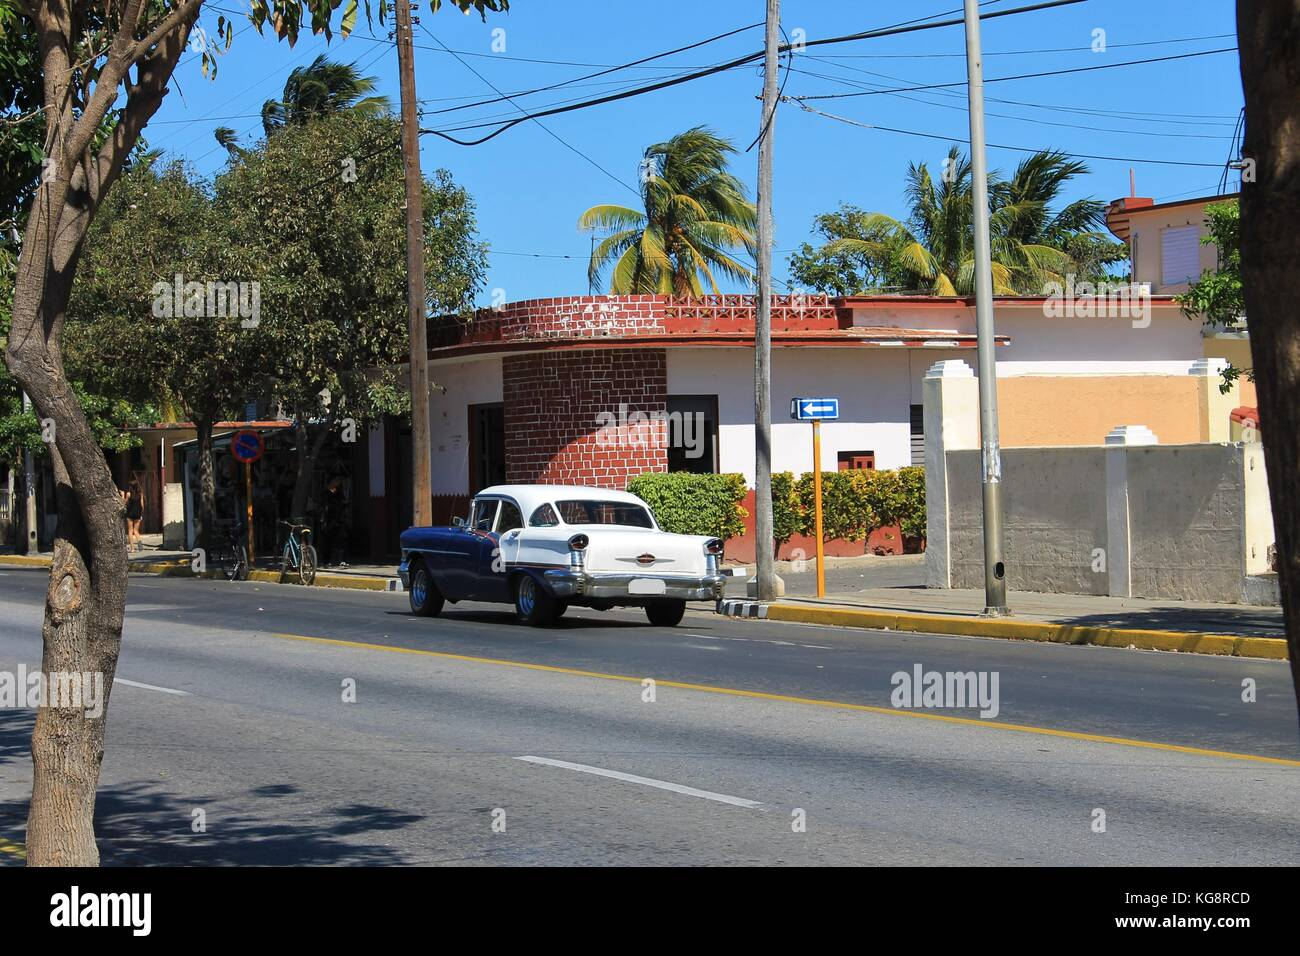 Antique American automobile on a street in Varadero, Cuba. - Stock Image